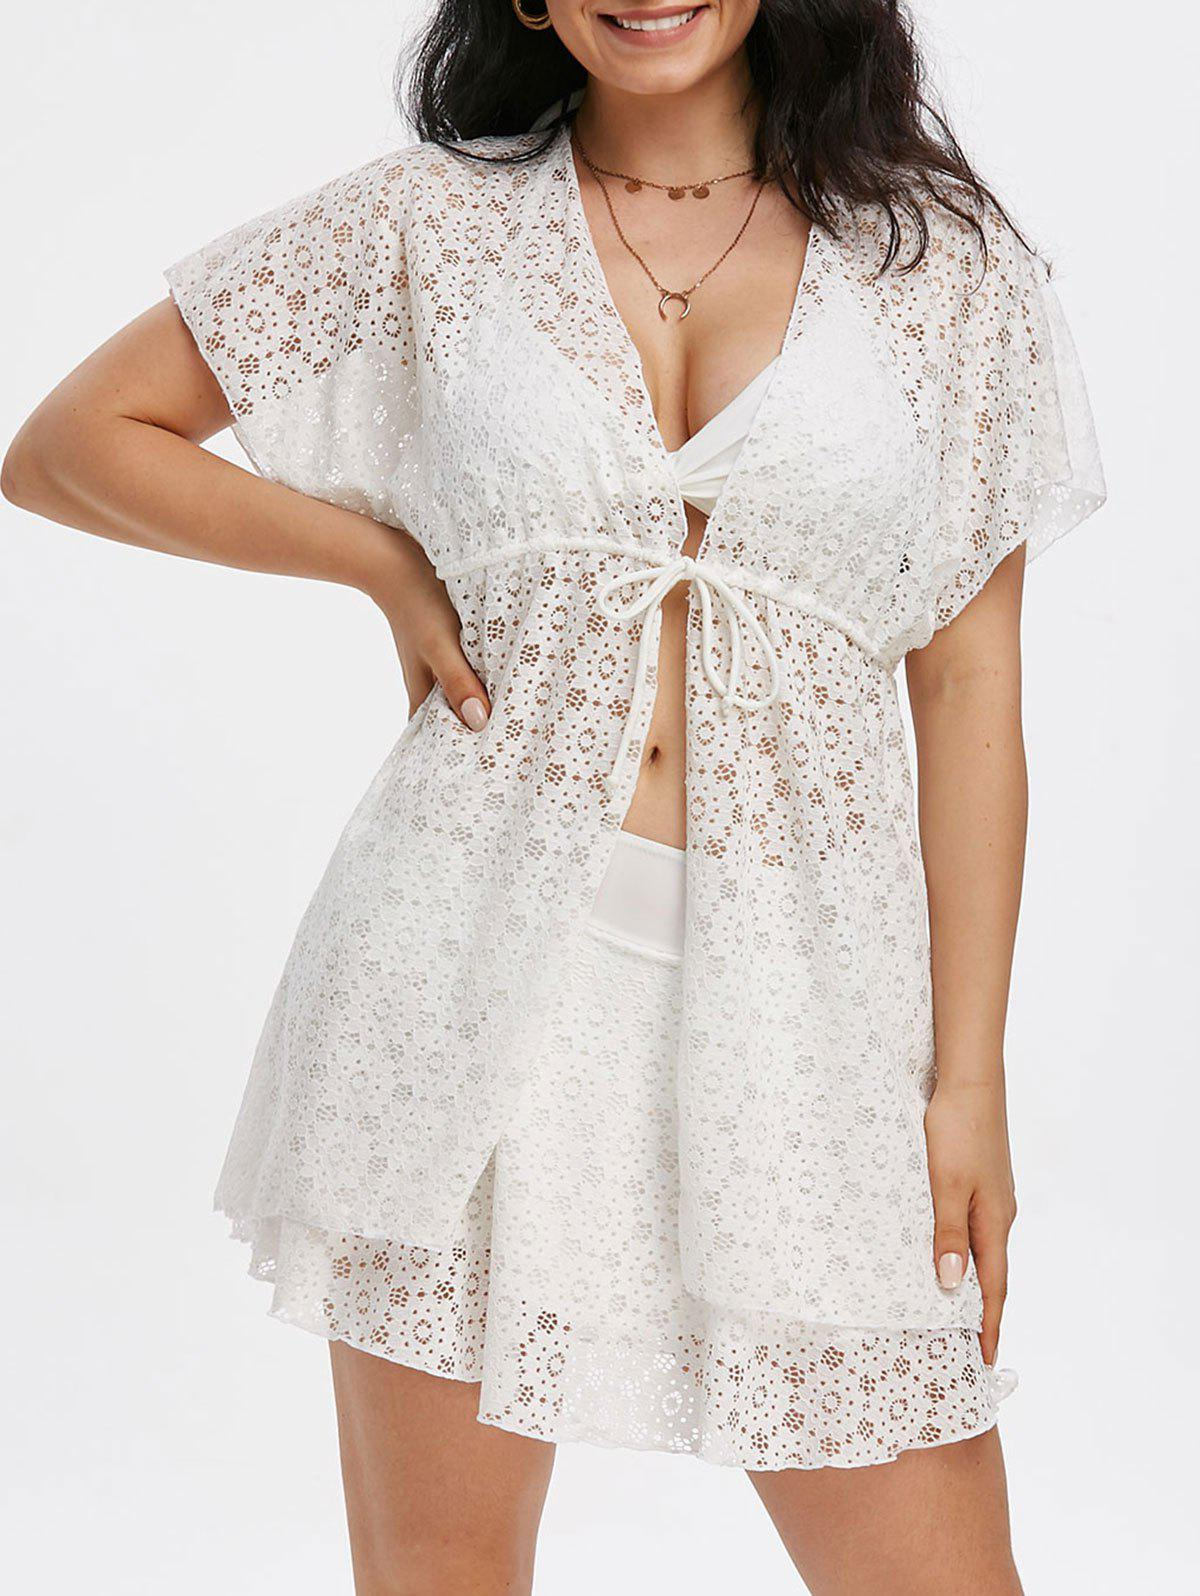 Online 3 Piece Lace Swimsuit Bra Skirt and Cover Up